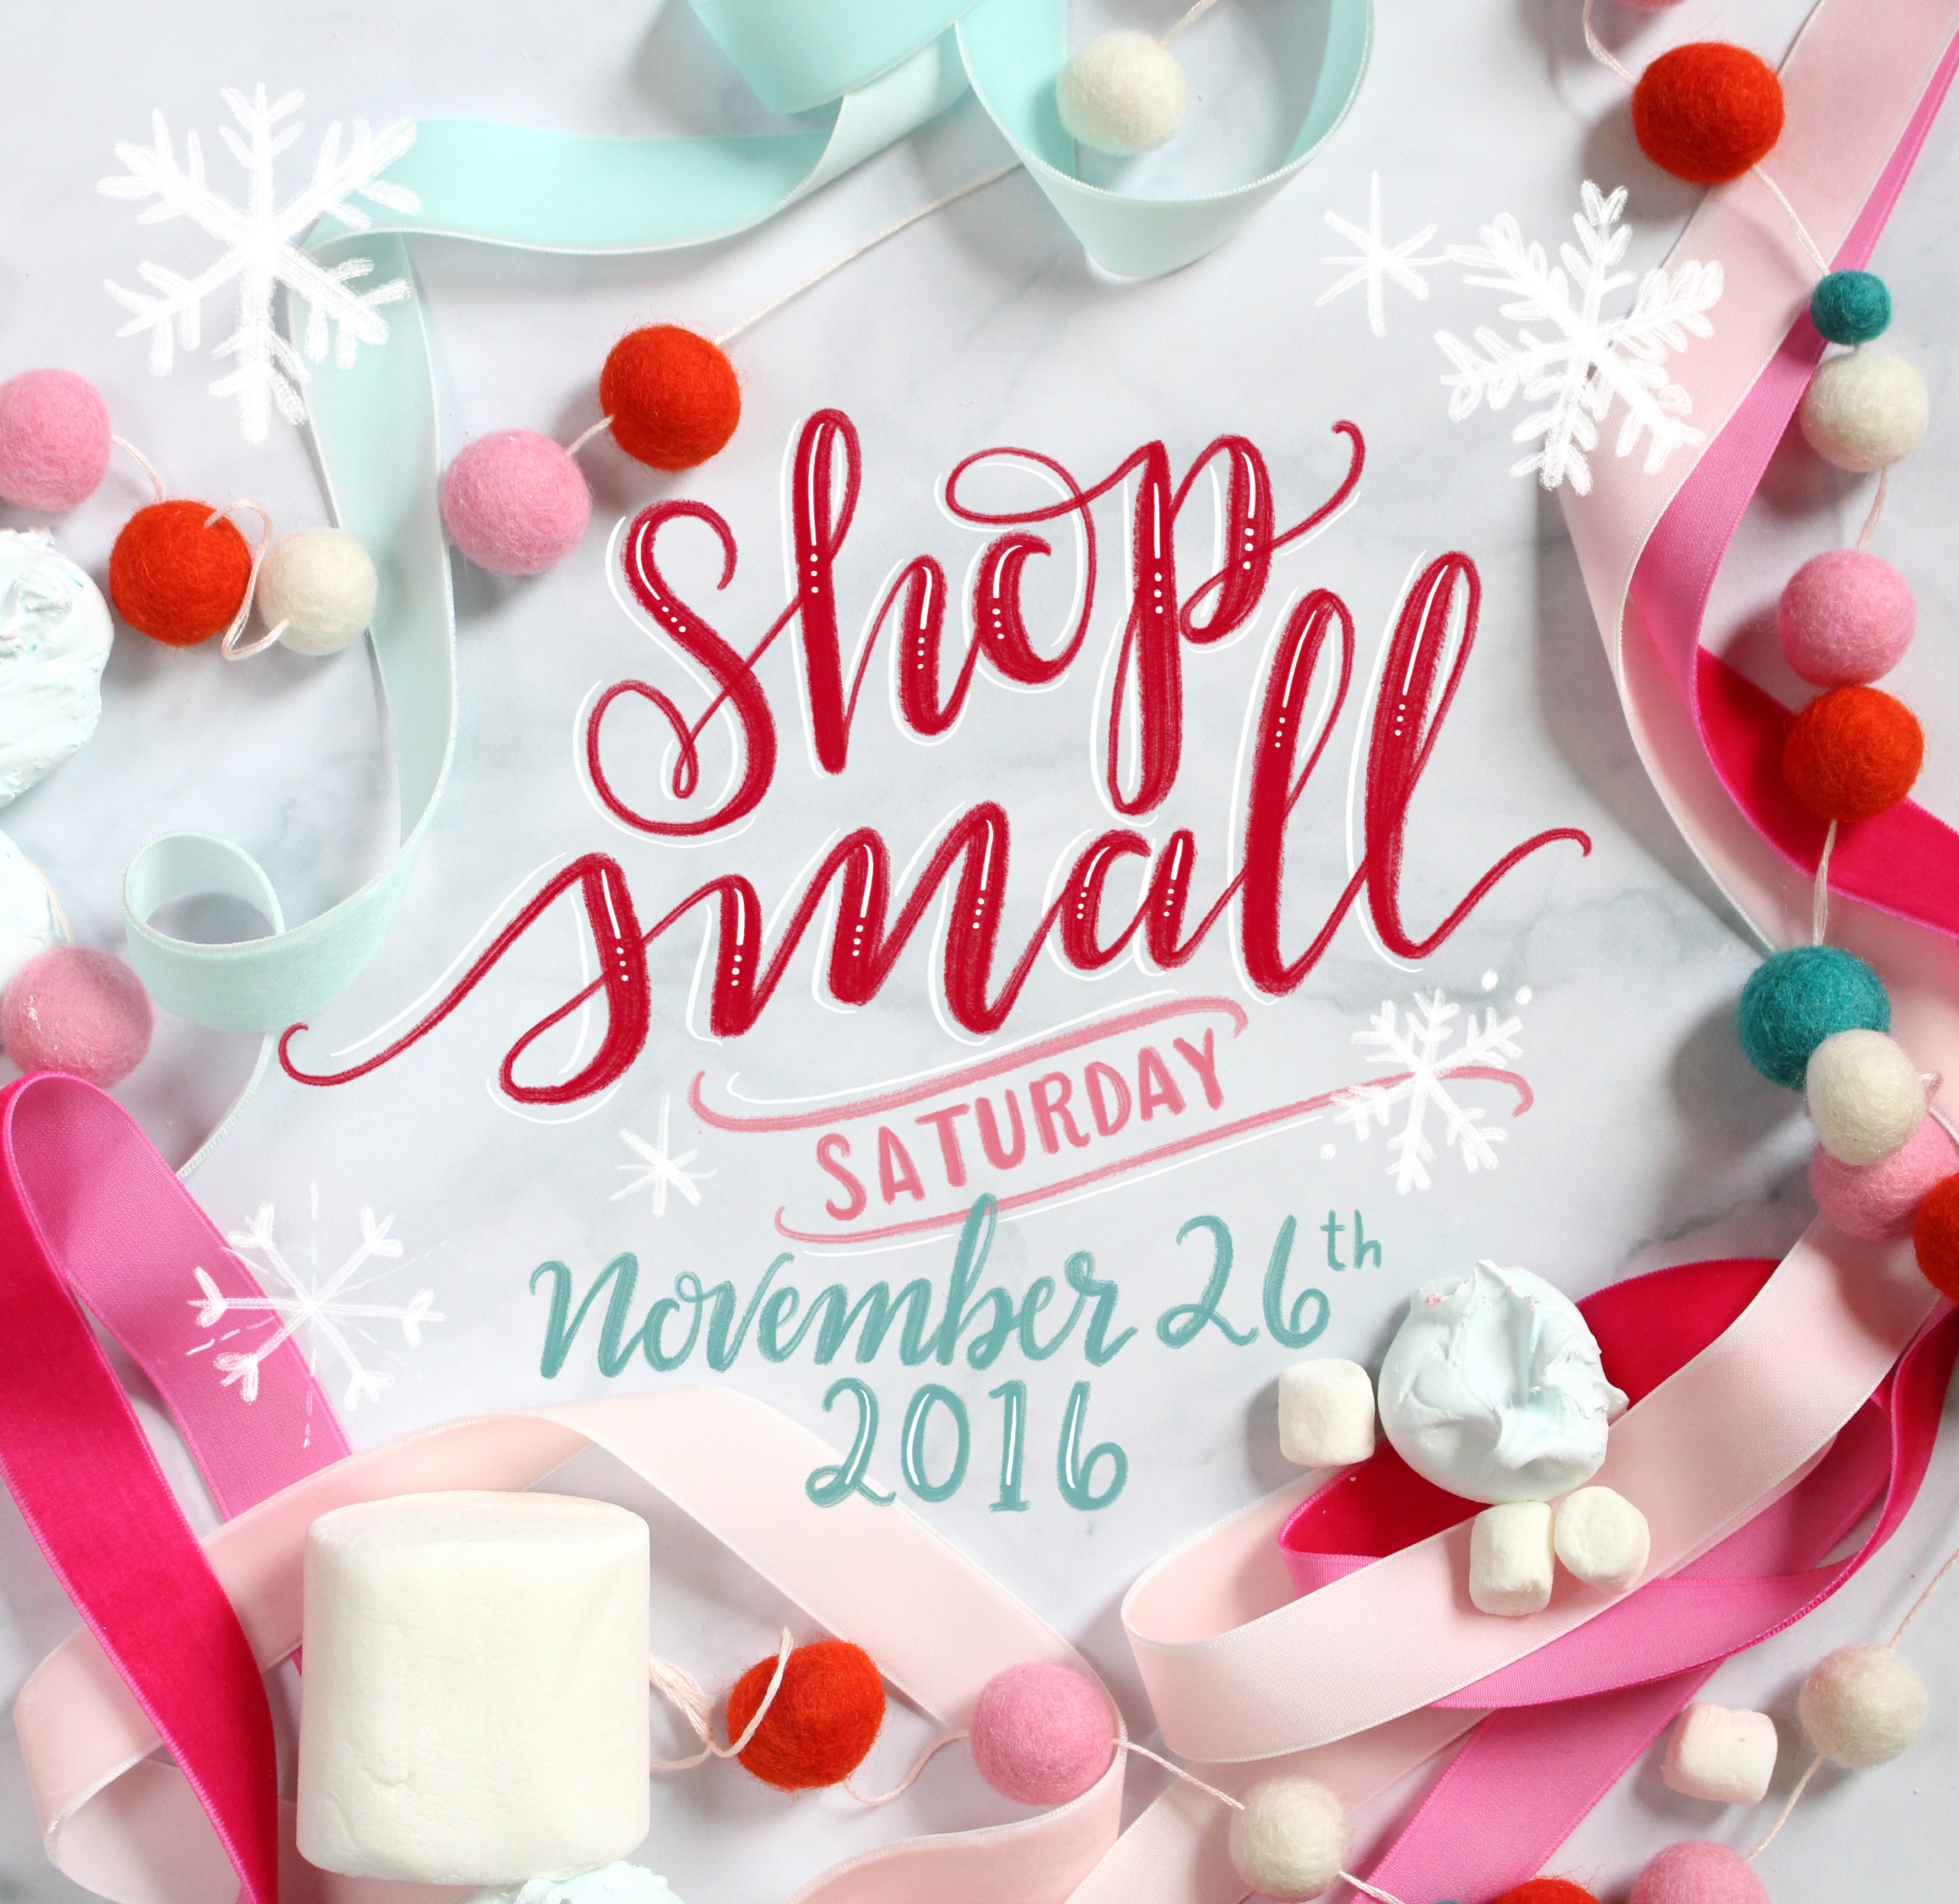 Shop Small on Small Business Saturday 2016. Hand Lettering by Valerie McKeehan of Lily & Val